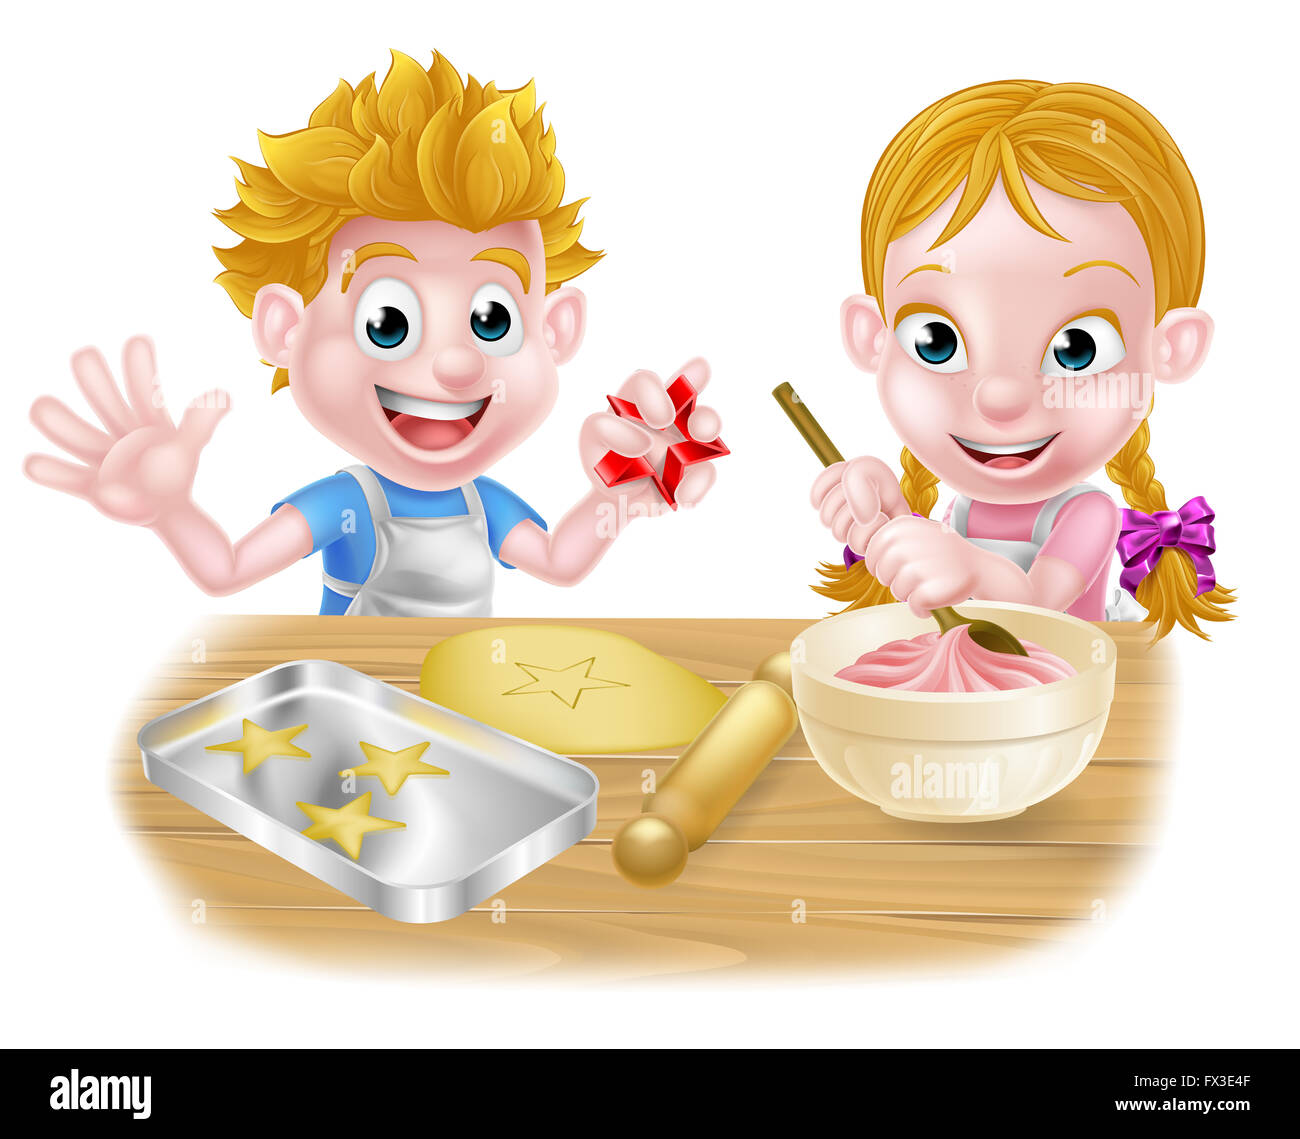 Cartoon Kids Baking And Cooking As Chefs In The Kitchen Fx E F